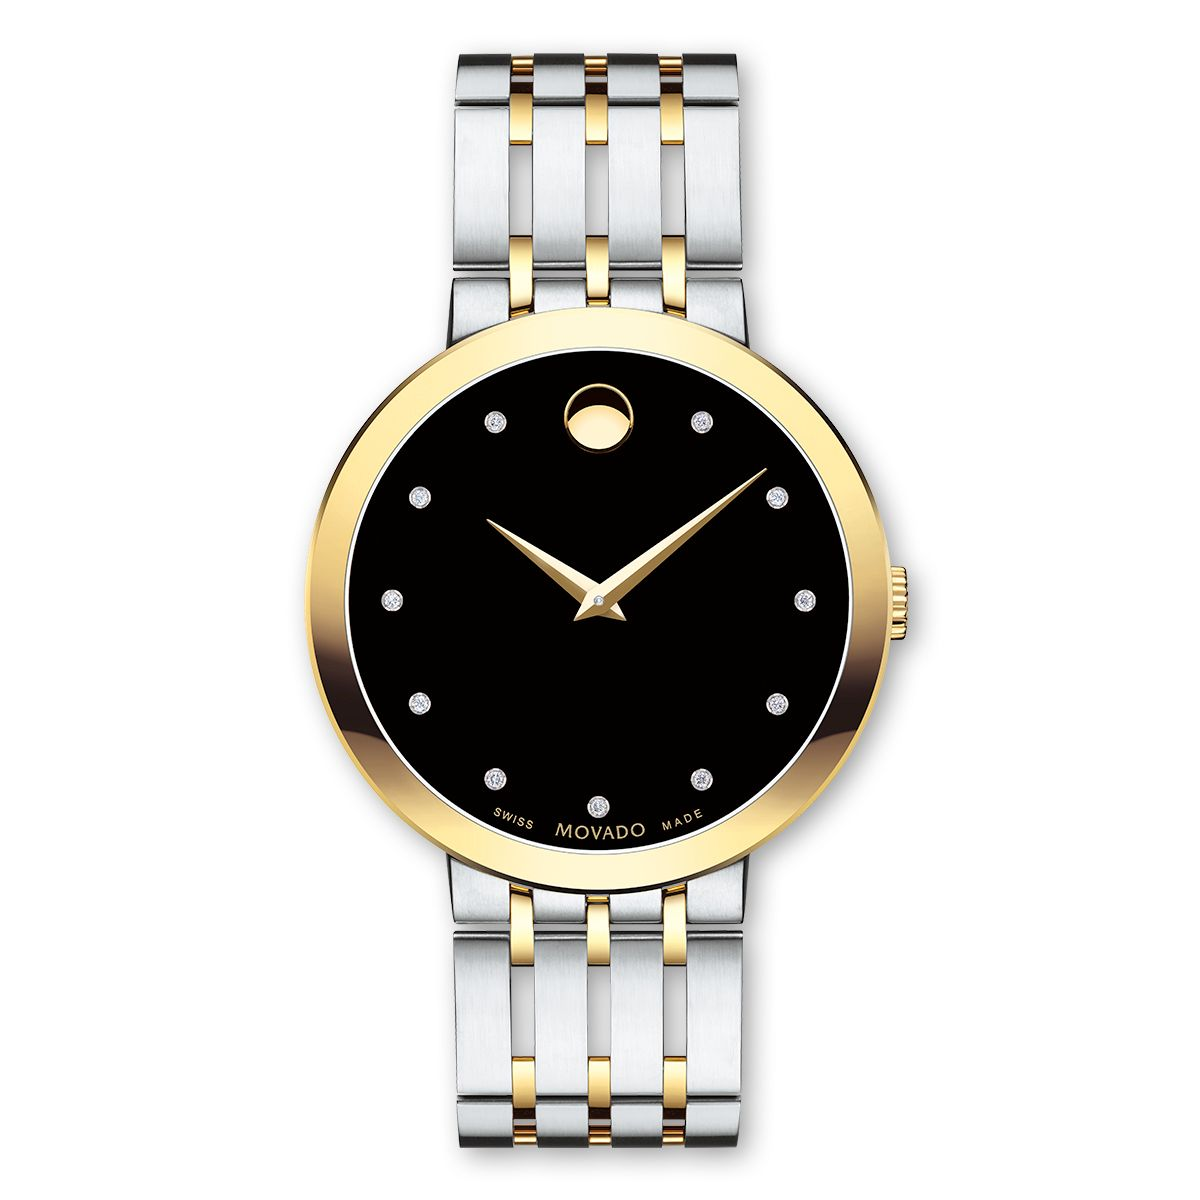 f21ddc86b54 Men Movado Watches - Macy s